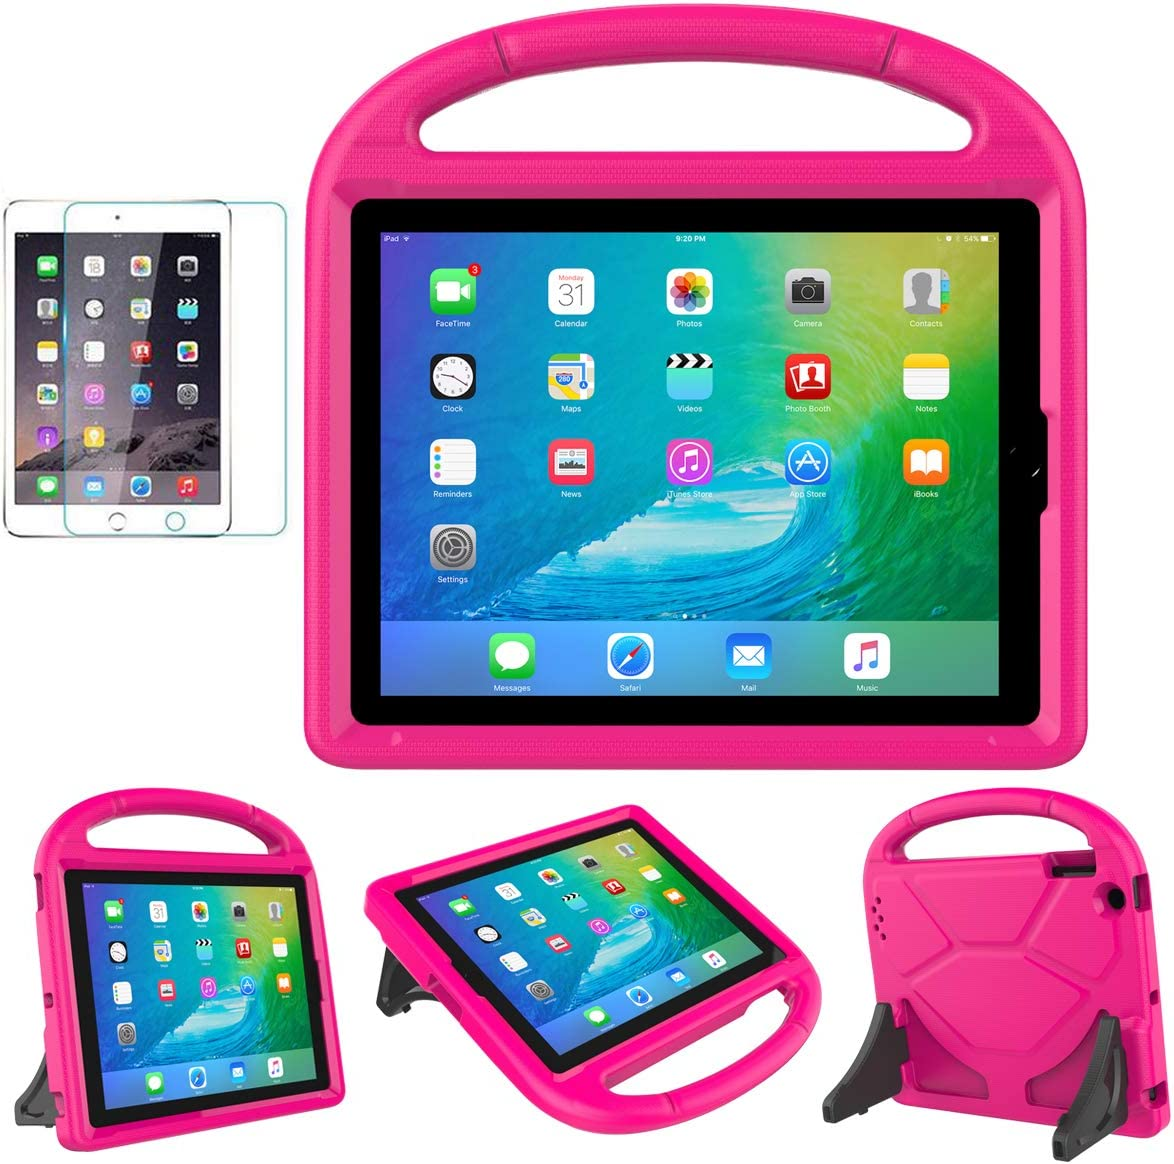 iPad 2/3/4(9.7 inch,Old Model) Case for Kids - SUPLIK Durable Shockproof Protective Handle Bumper Stand Cover with Screen Protector for Apple iPad 2nd,3rd,4th Generation, Pink